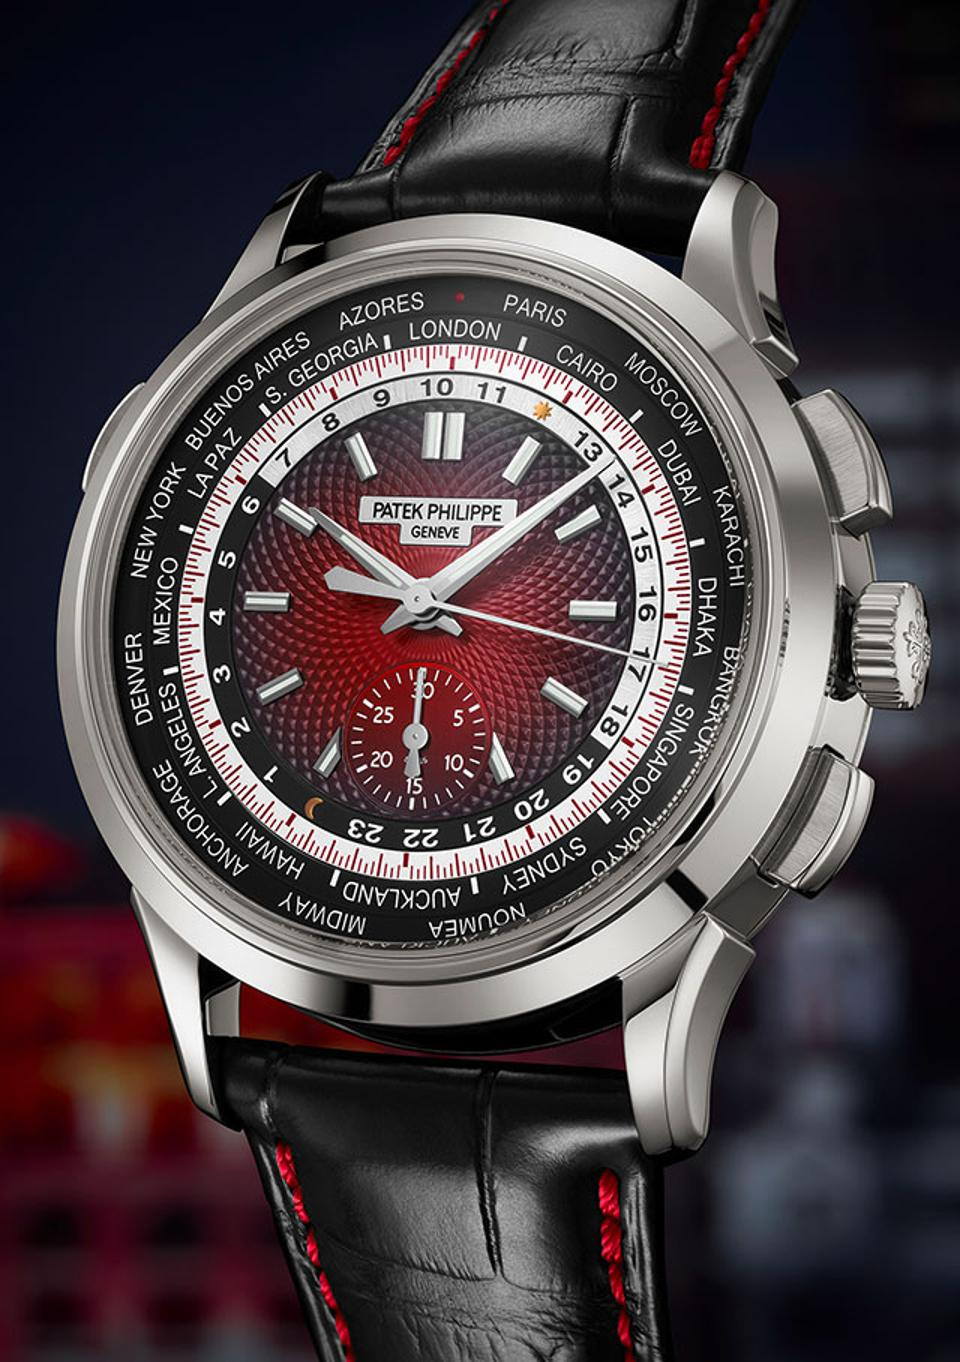 The new Patek Philippe Ref. 5930 World Time Chronograph, introduced at the Watch Art Grand Exhibition in Singapore.